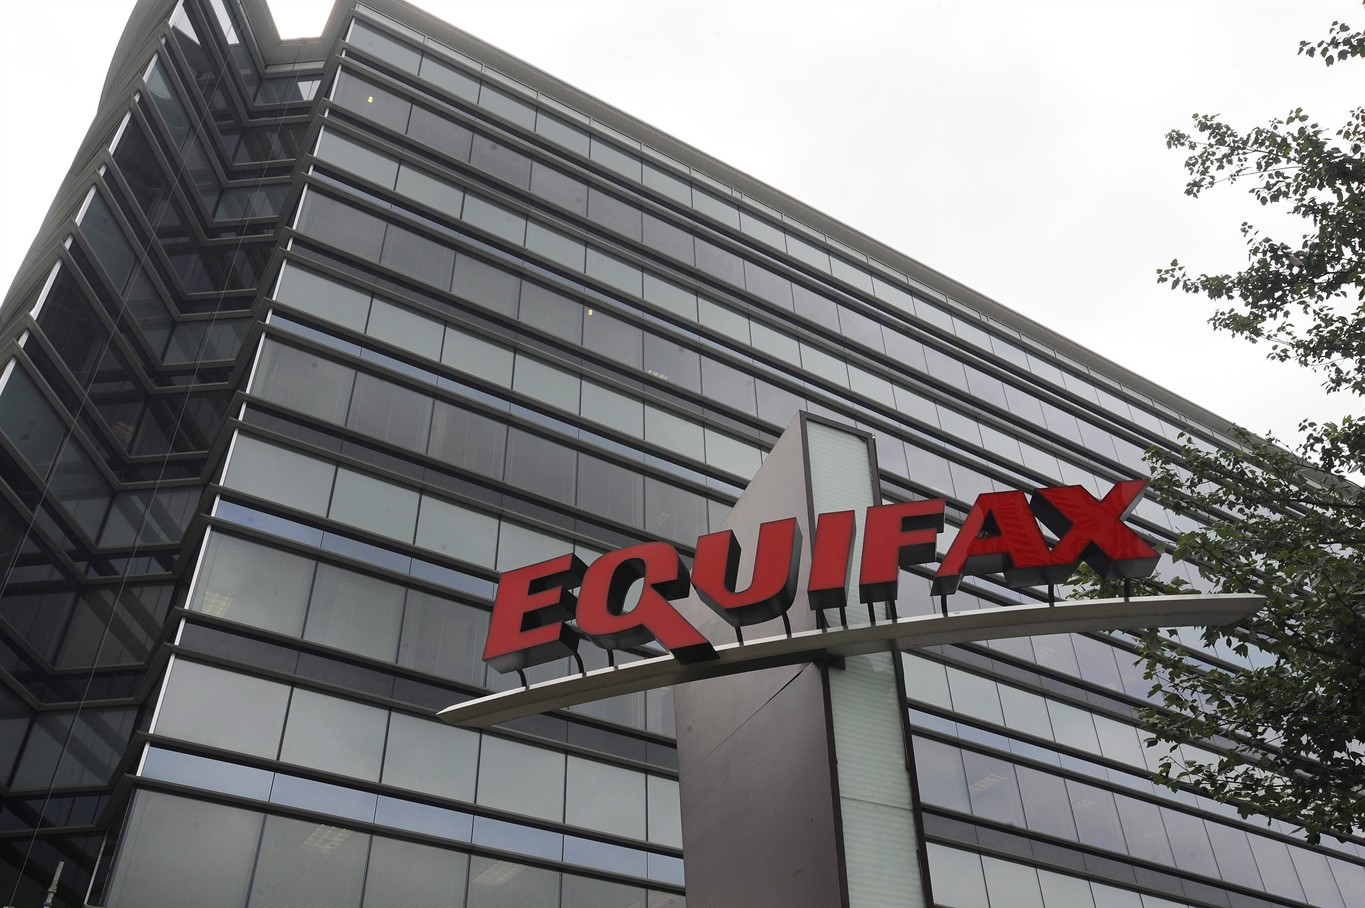 Equifax breach endangers 700K Nebraskans' data